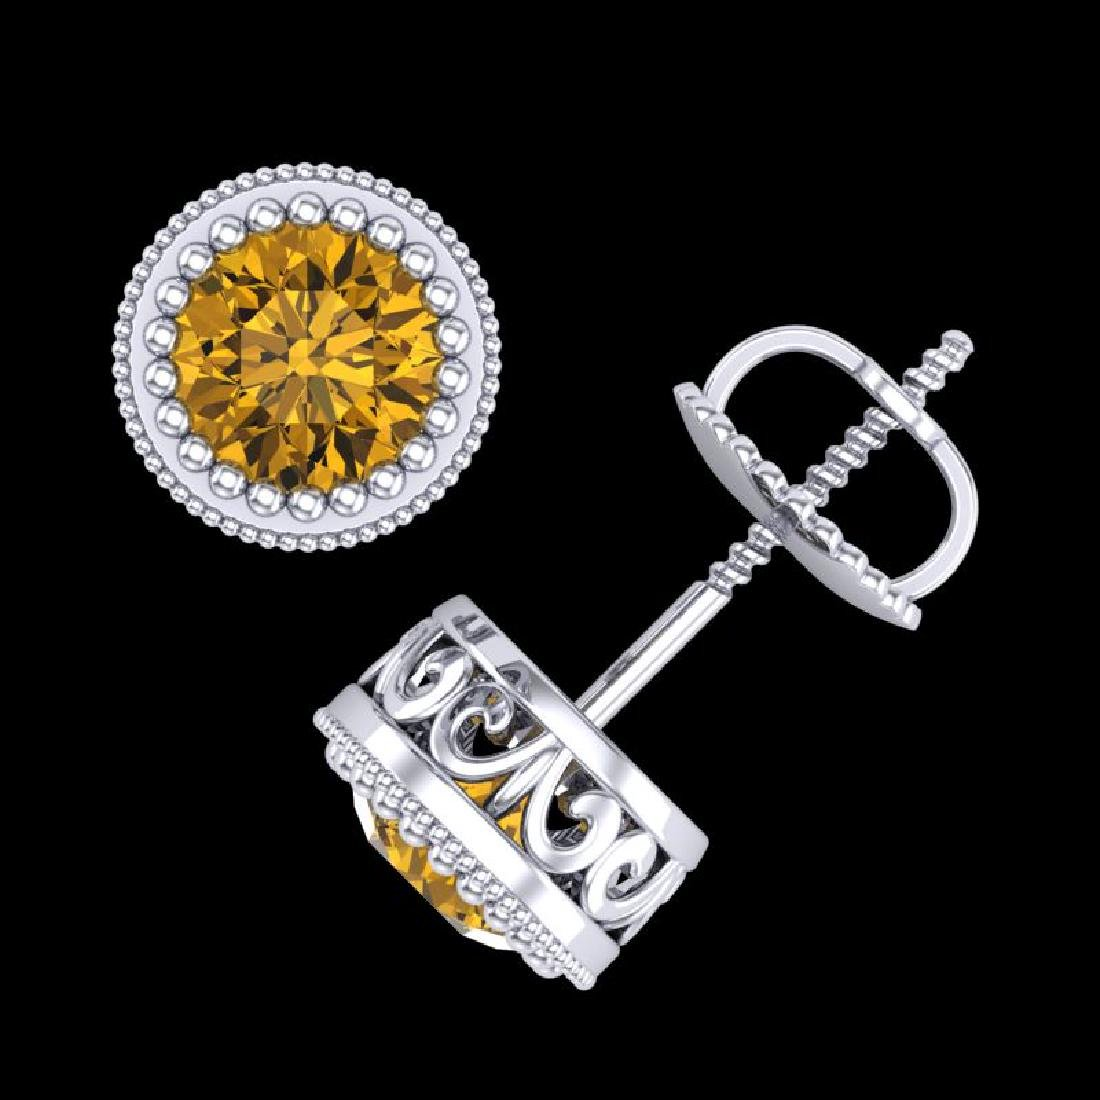 1.09 CTW Intense Fancy Yellow Diamond Art Deco Stud - 3